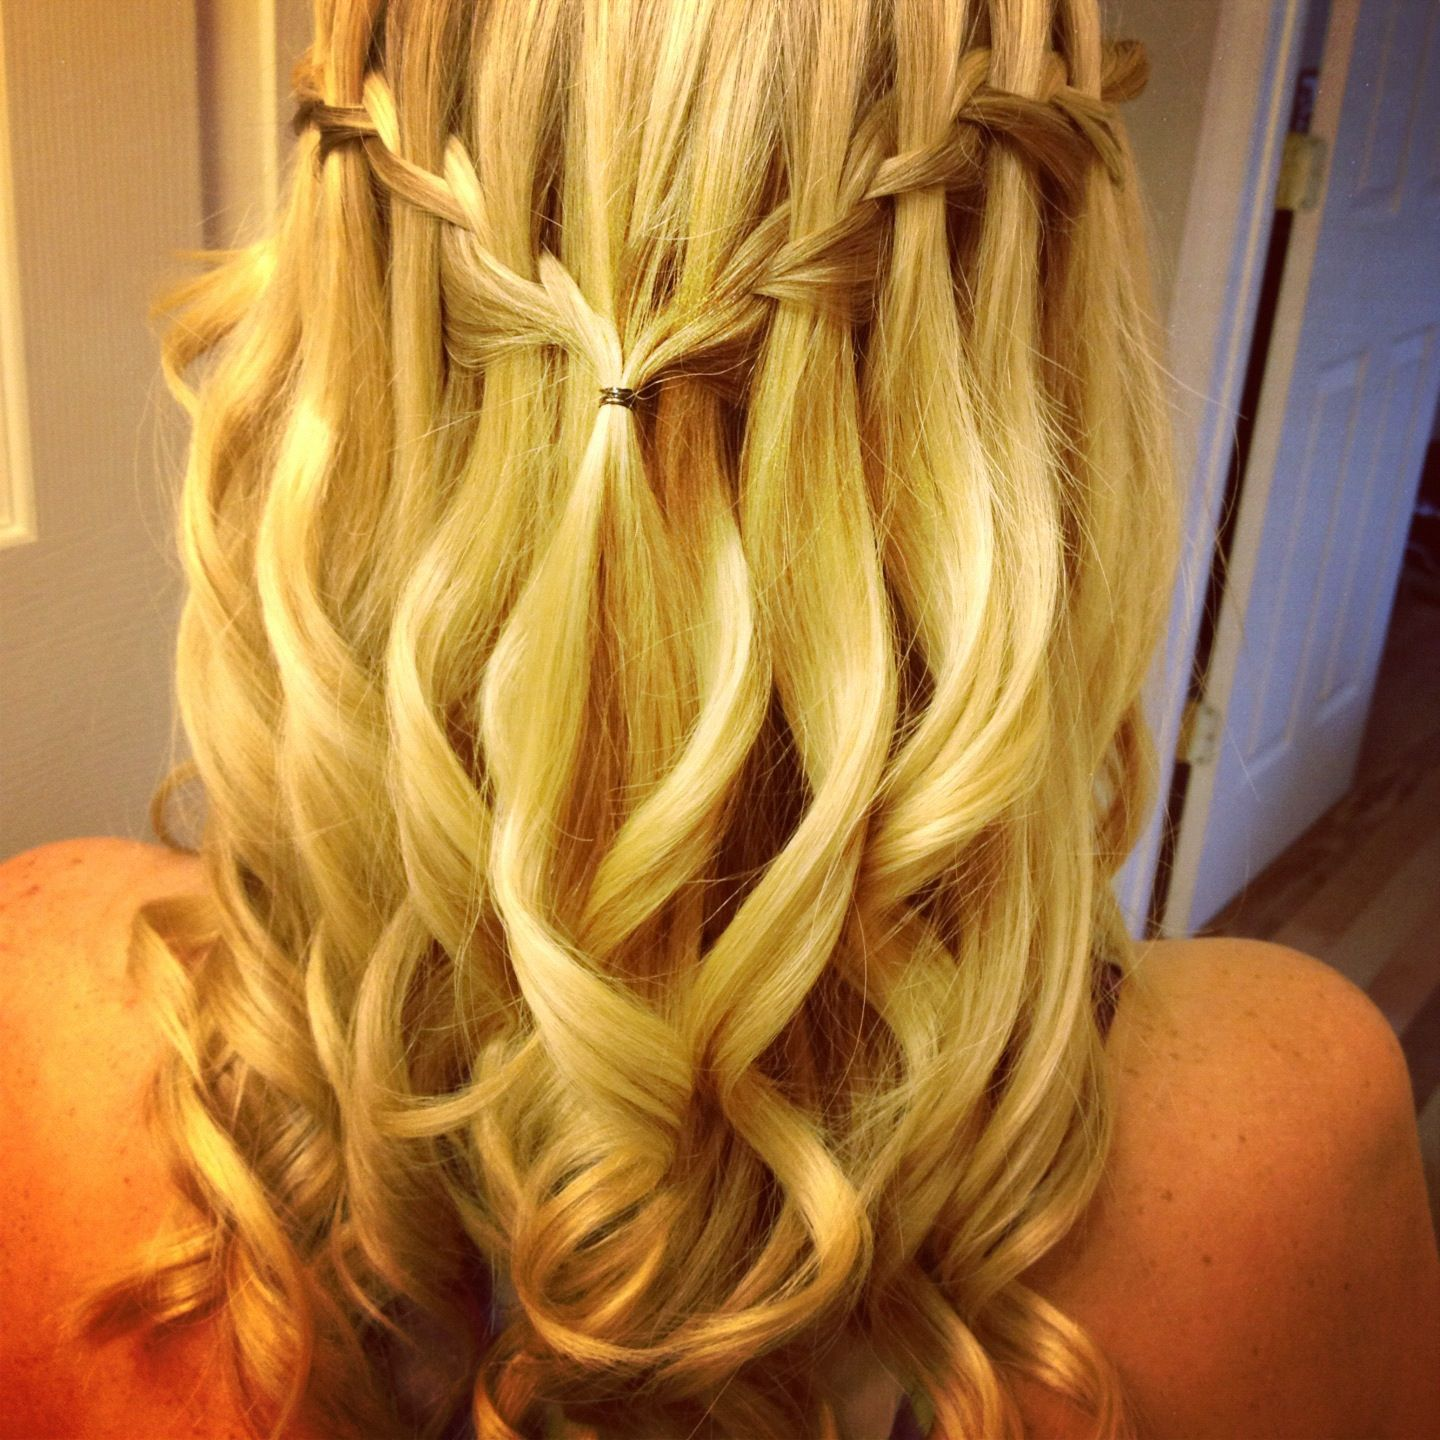 Graduation Hairstyles Girls: Curly Waterfall Braid. For Miss Sassy's Kindergarten